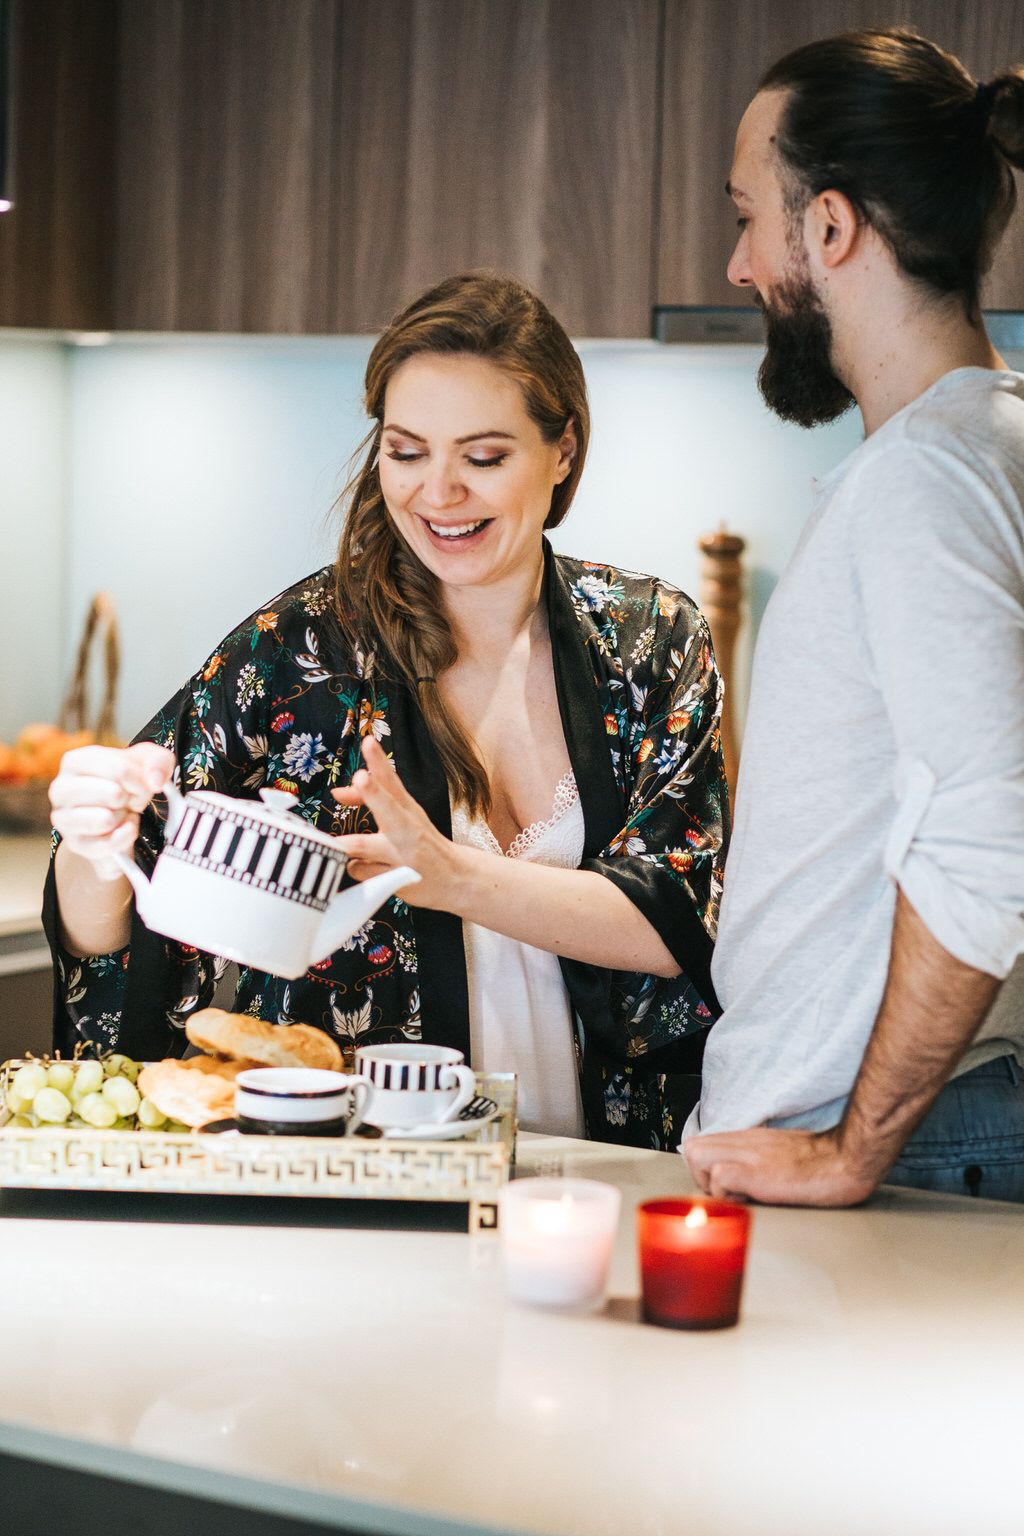 Husband With Pregnant Wife in kitchen